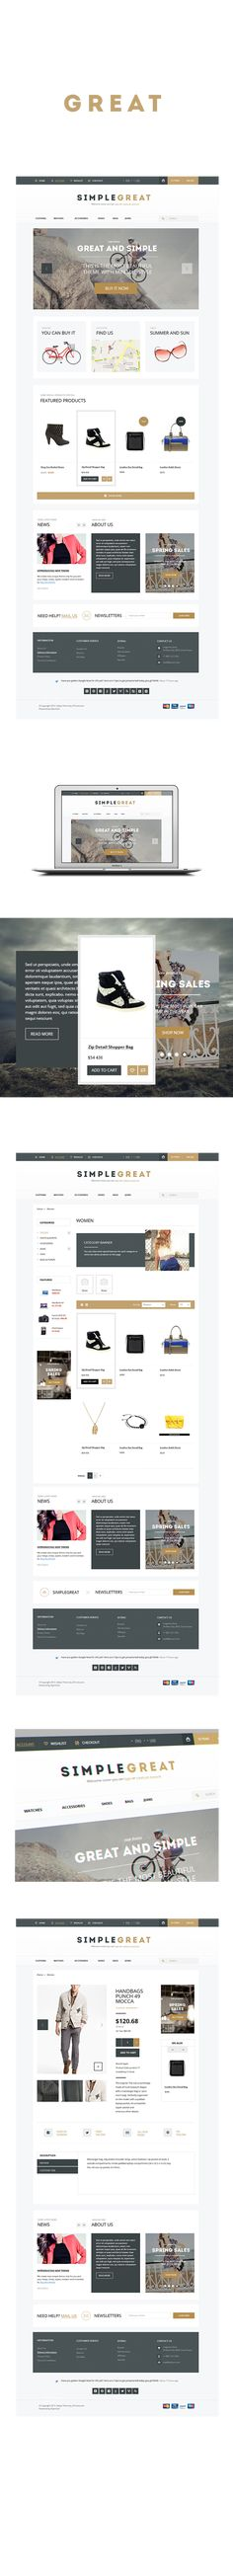 SimpleGreat on Web Design Served